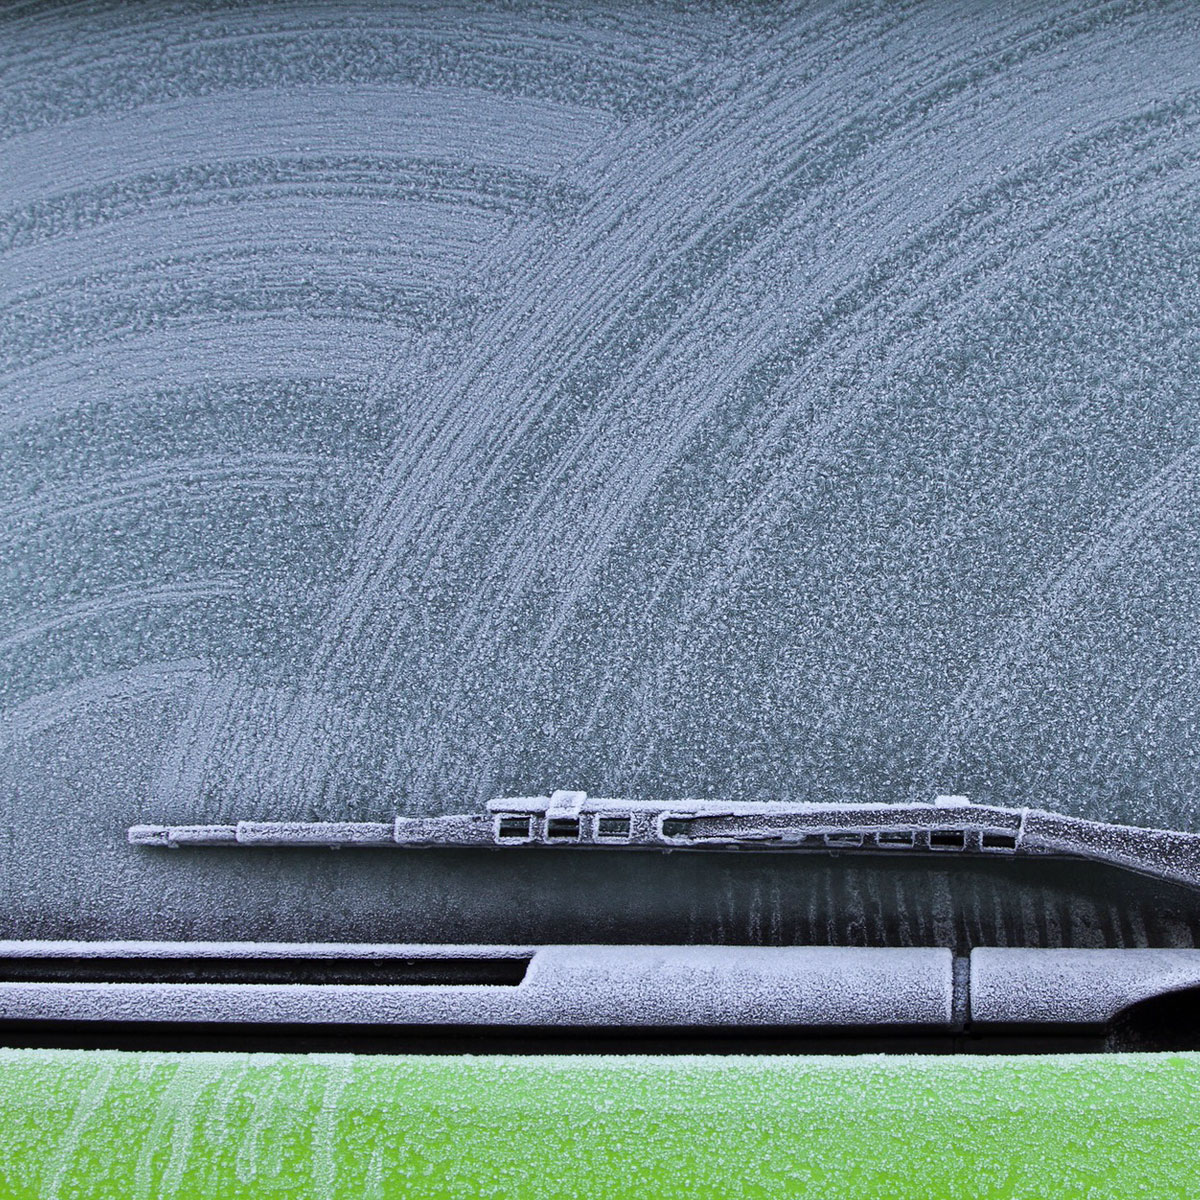 Mercedes-Benz wiper blades replacement costs & repairs